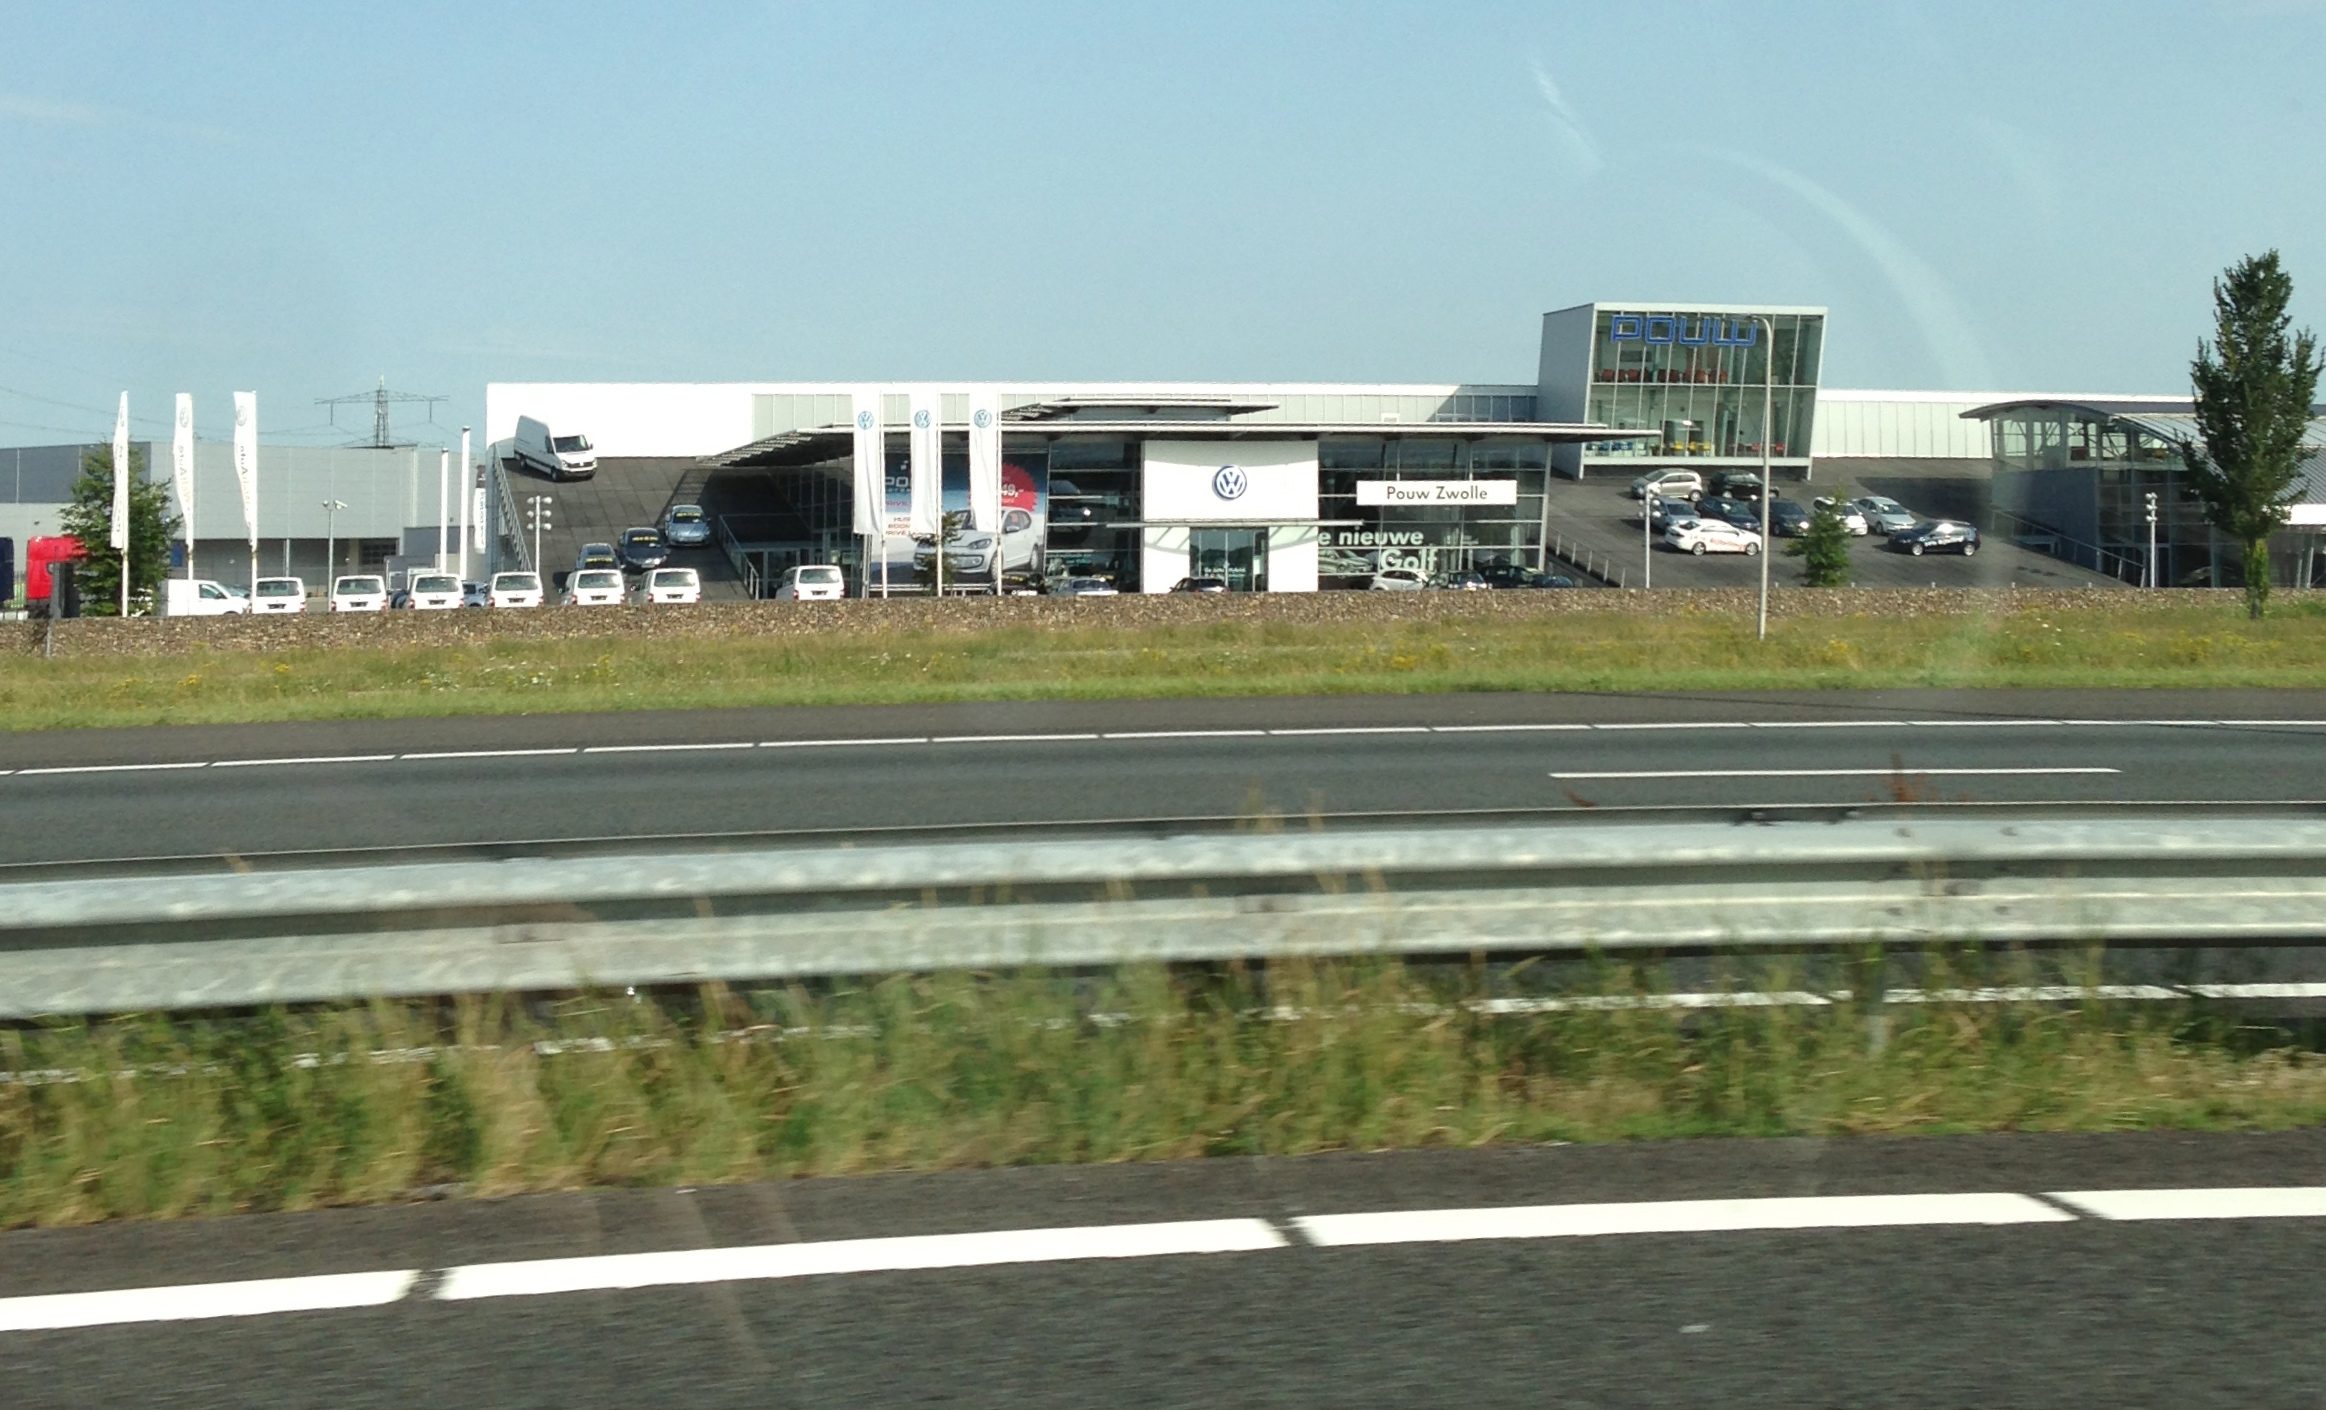 showrooms alongside the highway